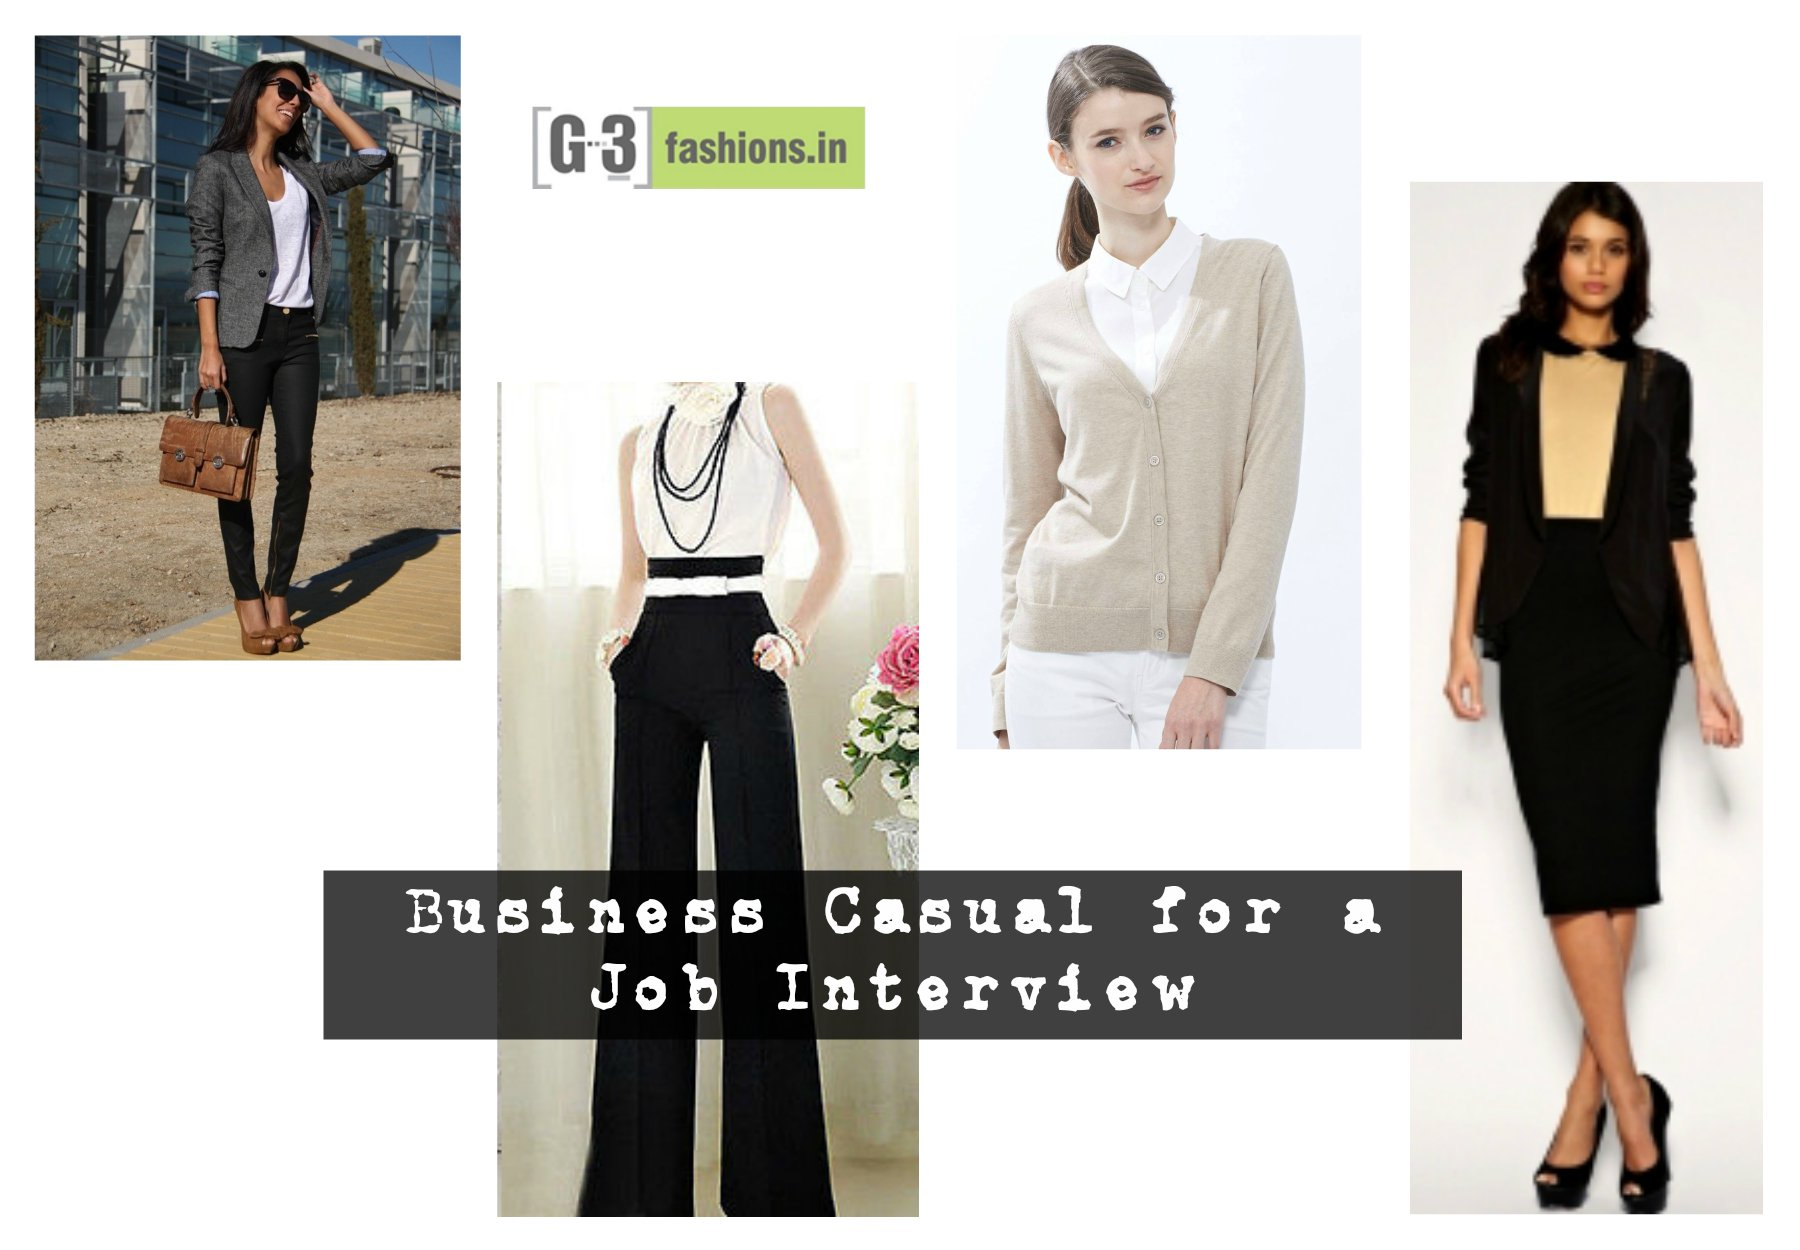 how to dress up for job interview women s wear com business casual for women on a job interview how to dress for a job interview